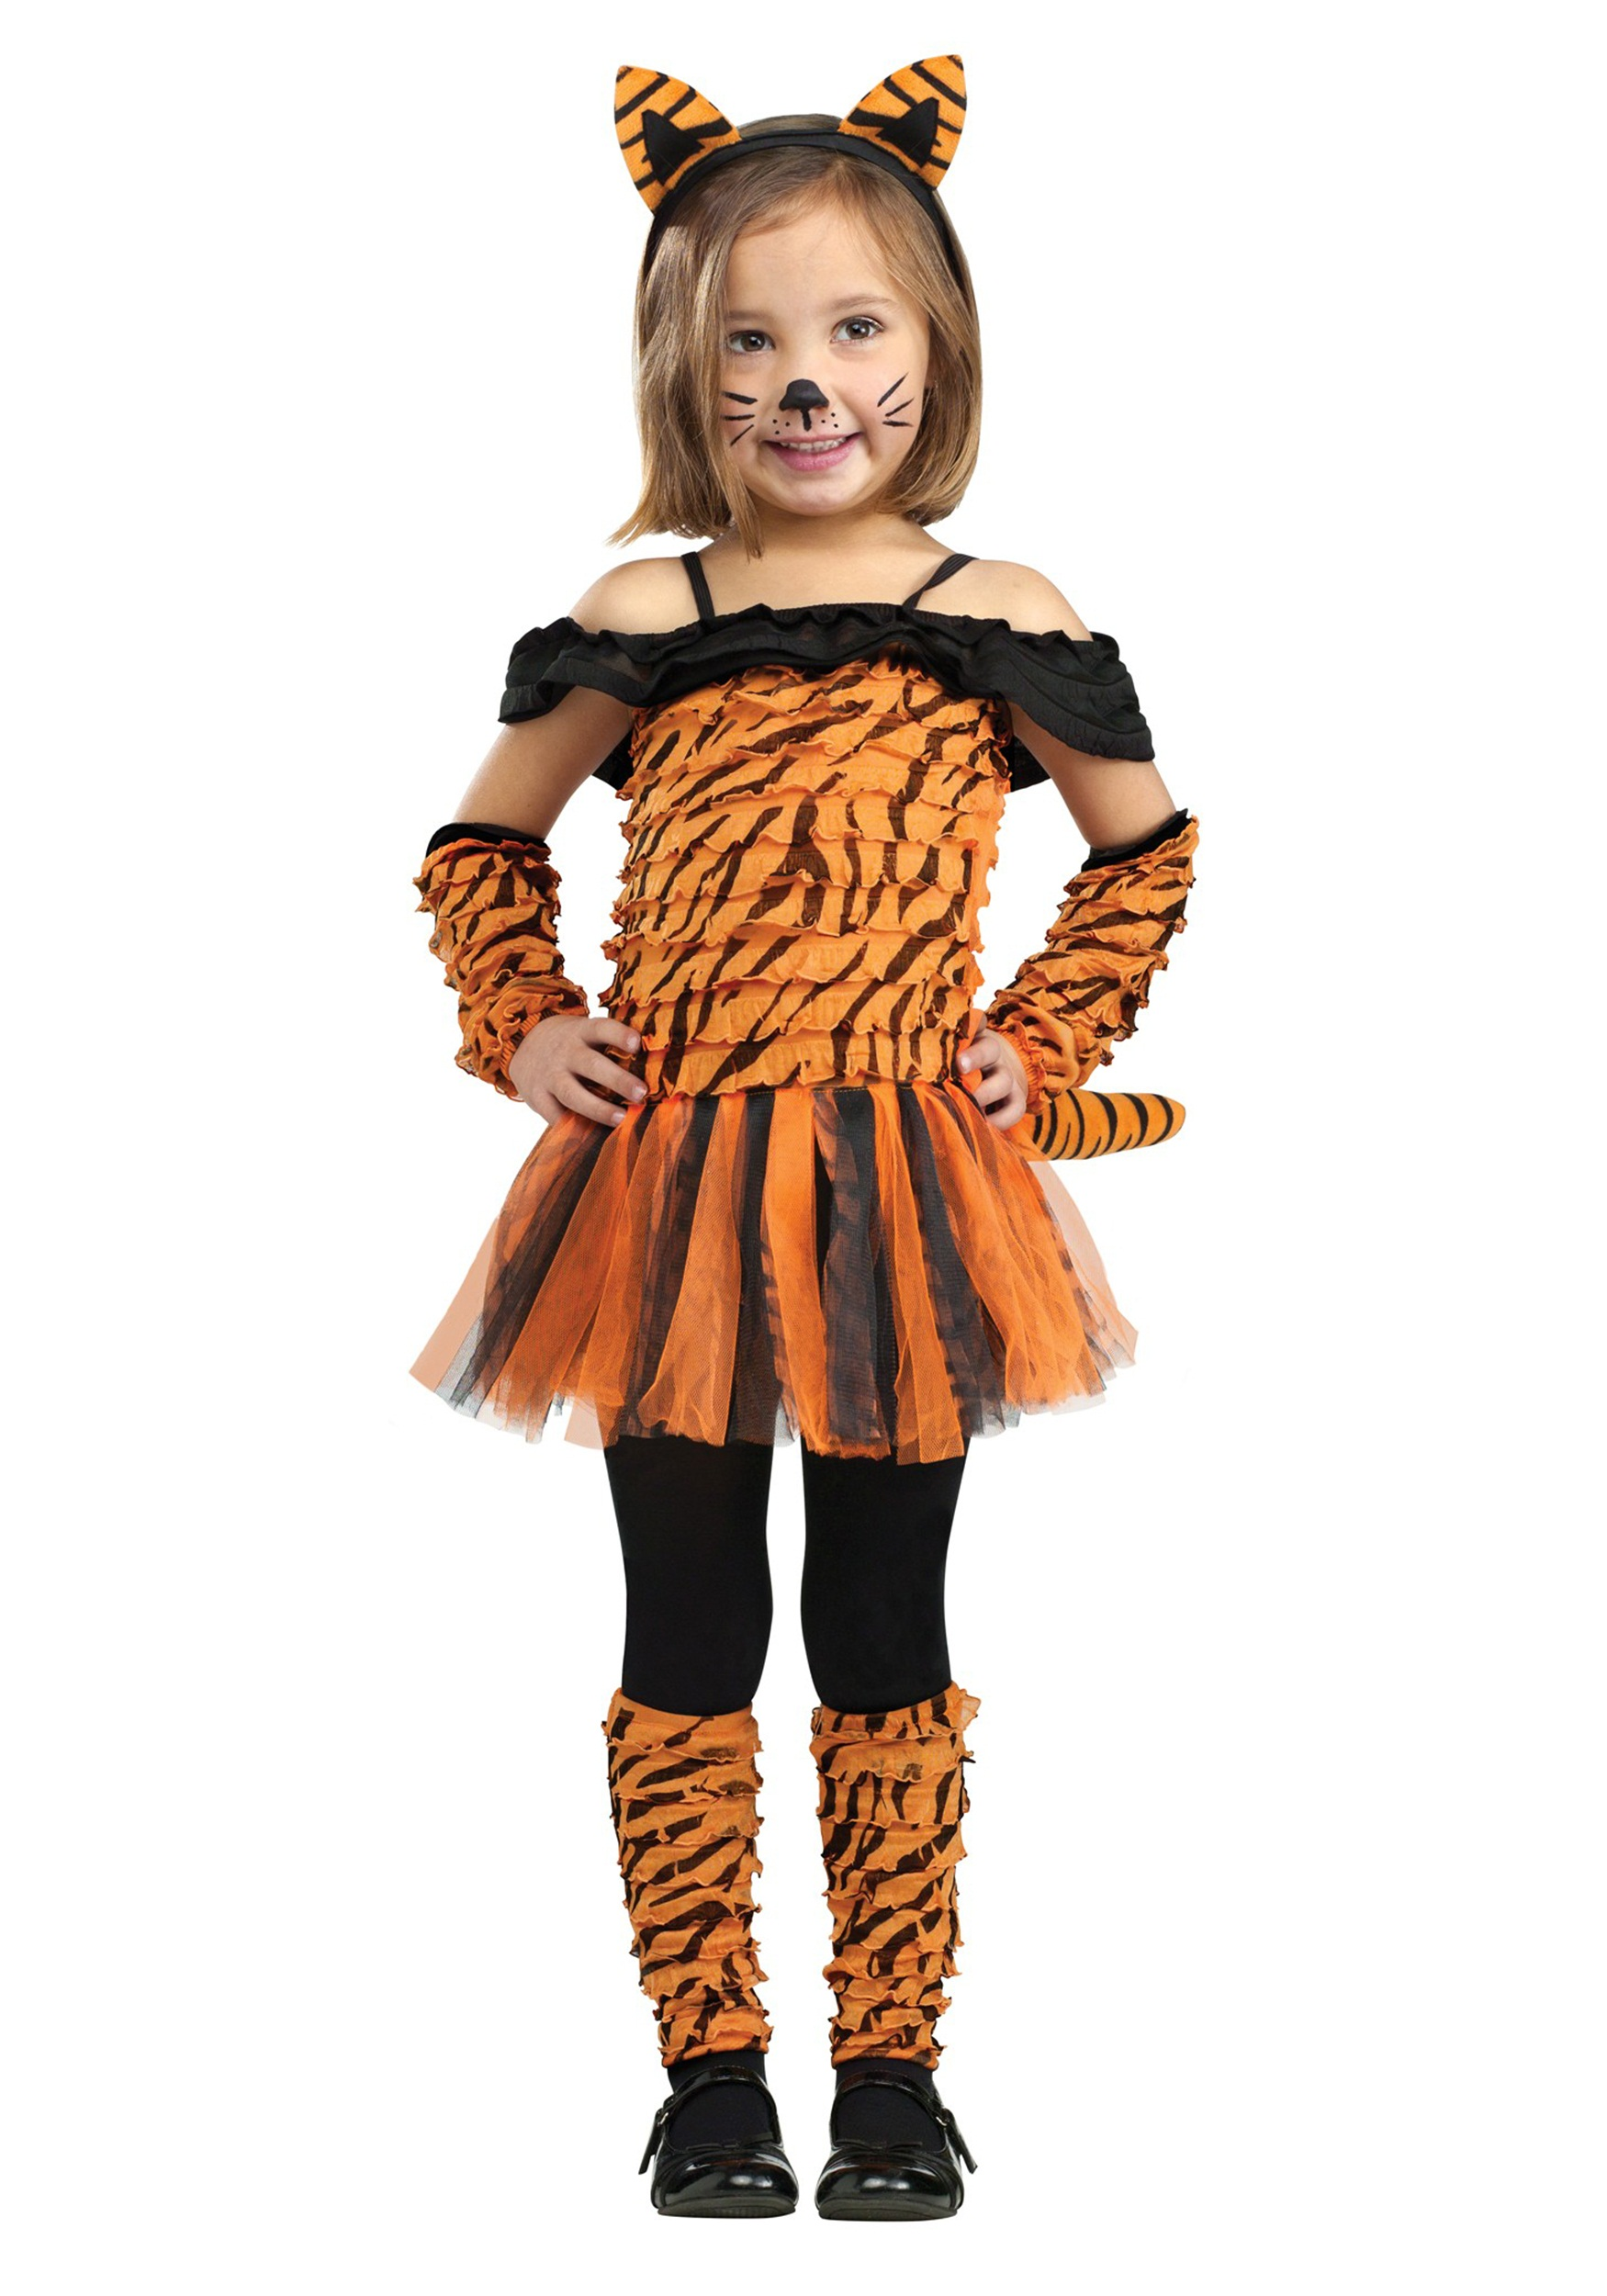 758e46d530 Toddler Tiger Costumes & Old Navy Tiger Costume 2-Piece Halloween ...